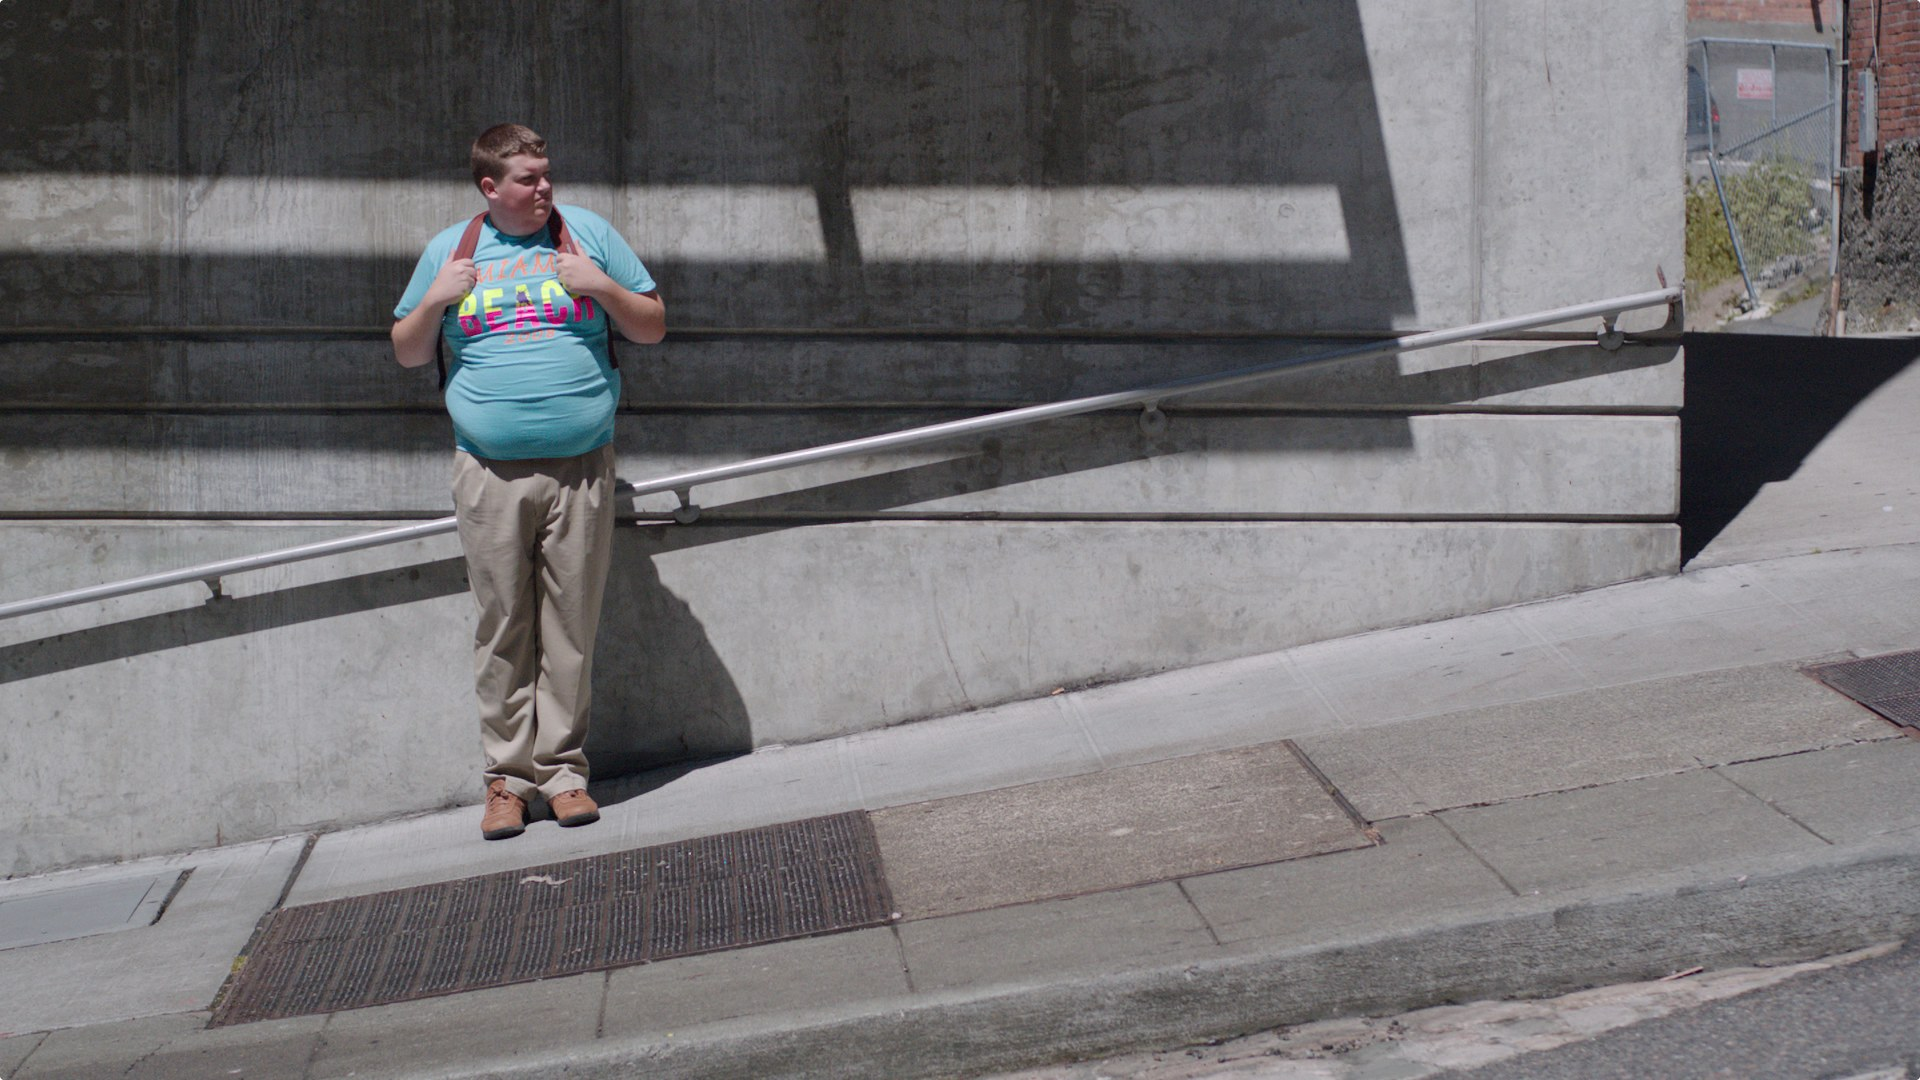 FAT KID RULES THE WORLDDirected by Matthew Lillard, Cinematography by Noah Rosenthal